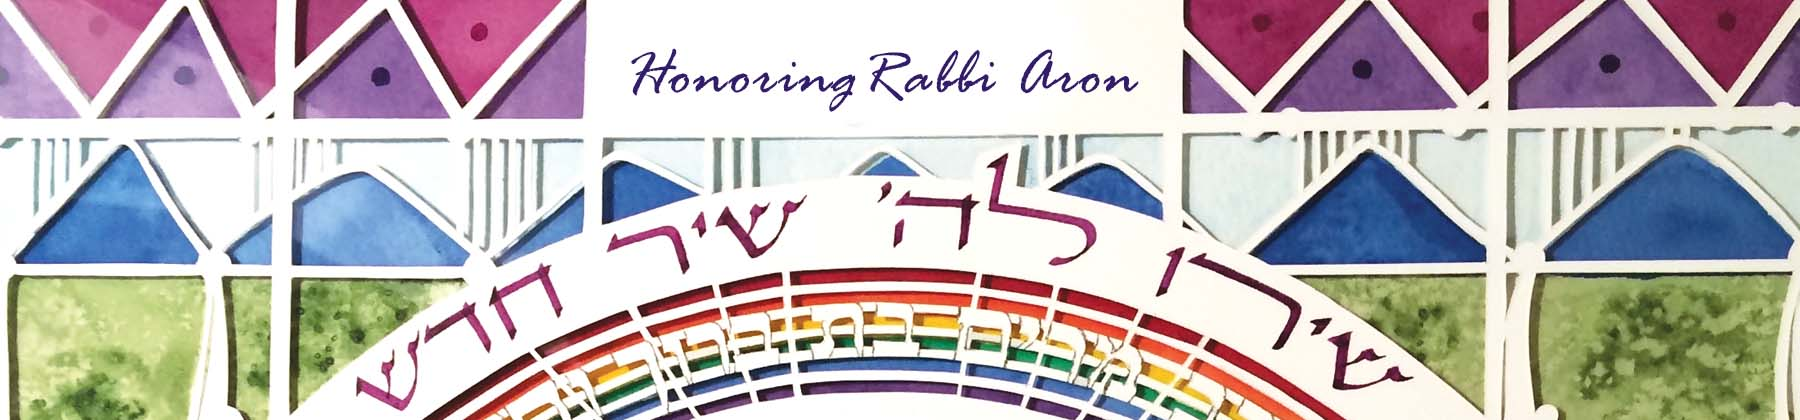 Banner Image for VIA ZOOM: Rabbi Aron's Farewell Shabbat Service